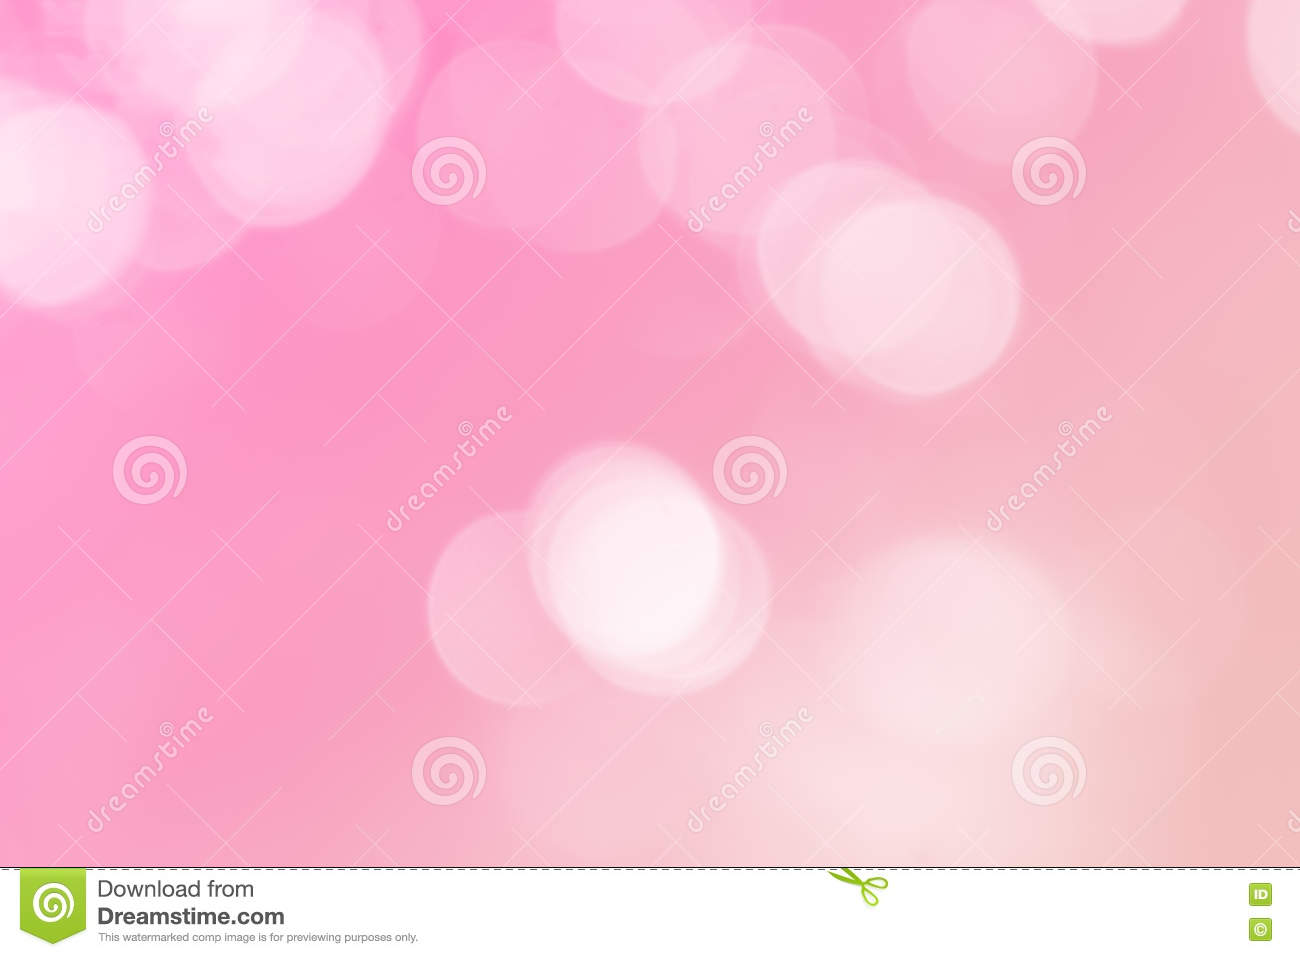 Soft Blurred Sweet Candy Pastel Background With Natural Bokeh Stock